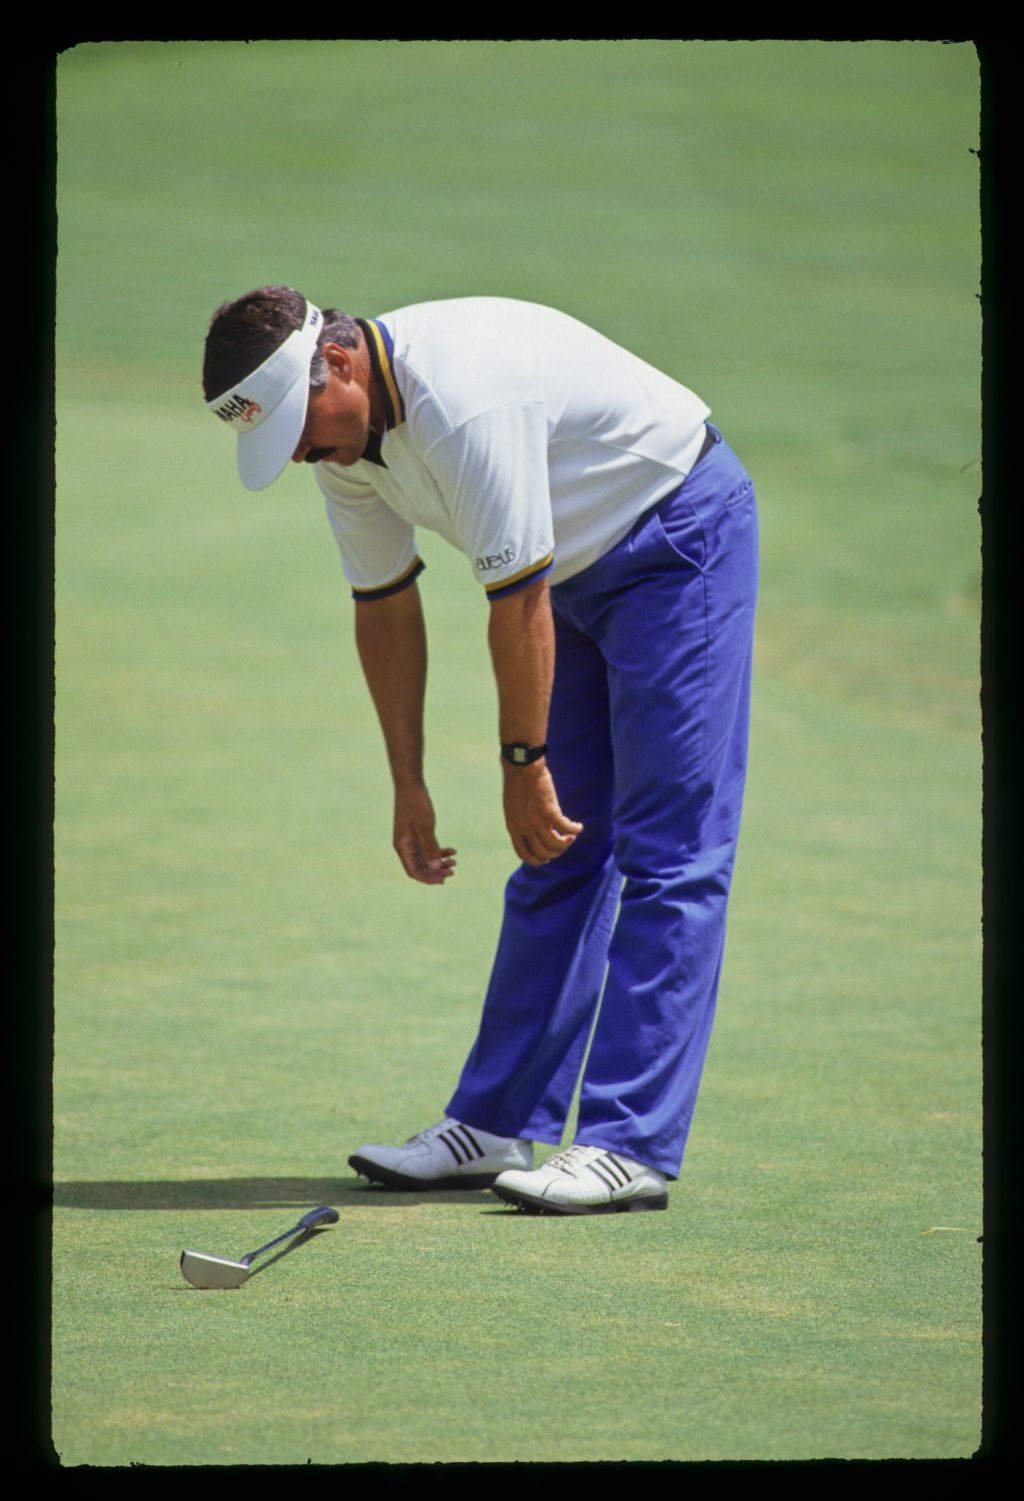 Scott Simpson with hands on his knees looking at his dropped putter during the 1991 US Open